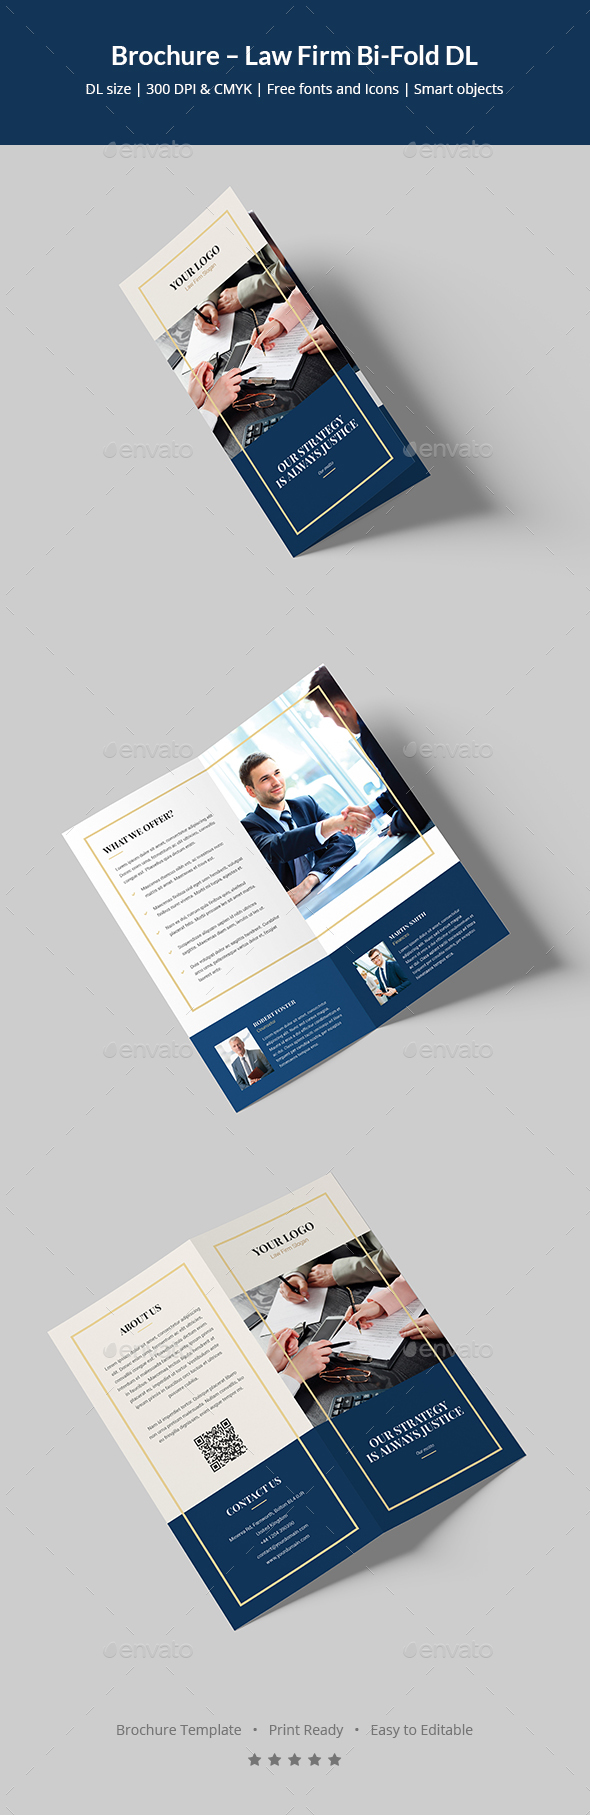 dl brochure template - brochure law firm bi fold dl by artbart graphicriver